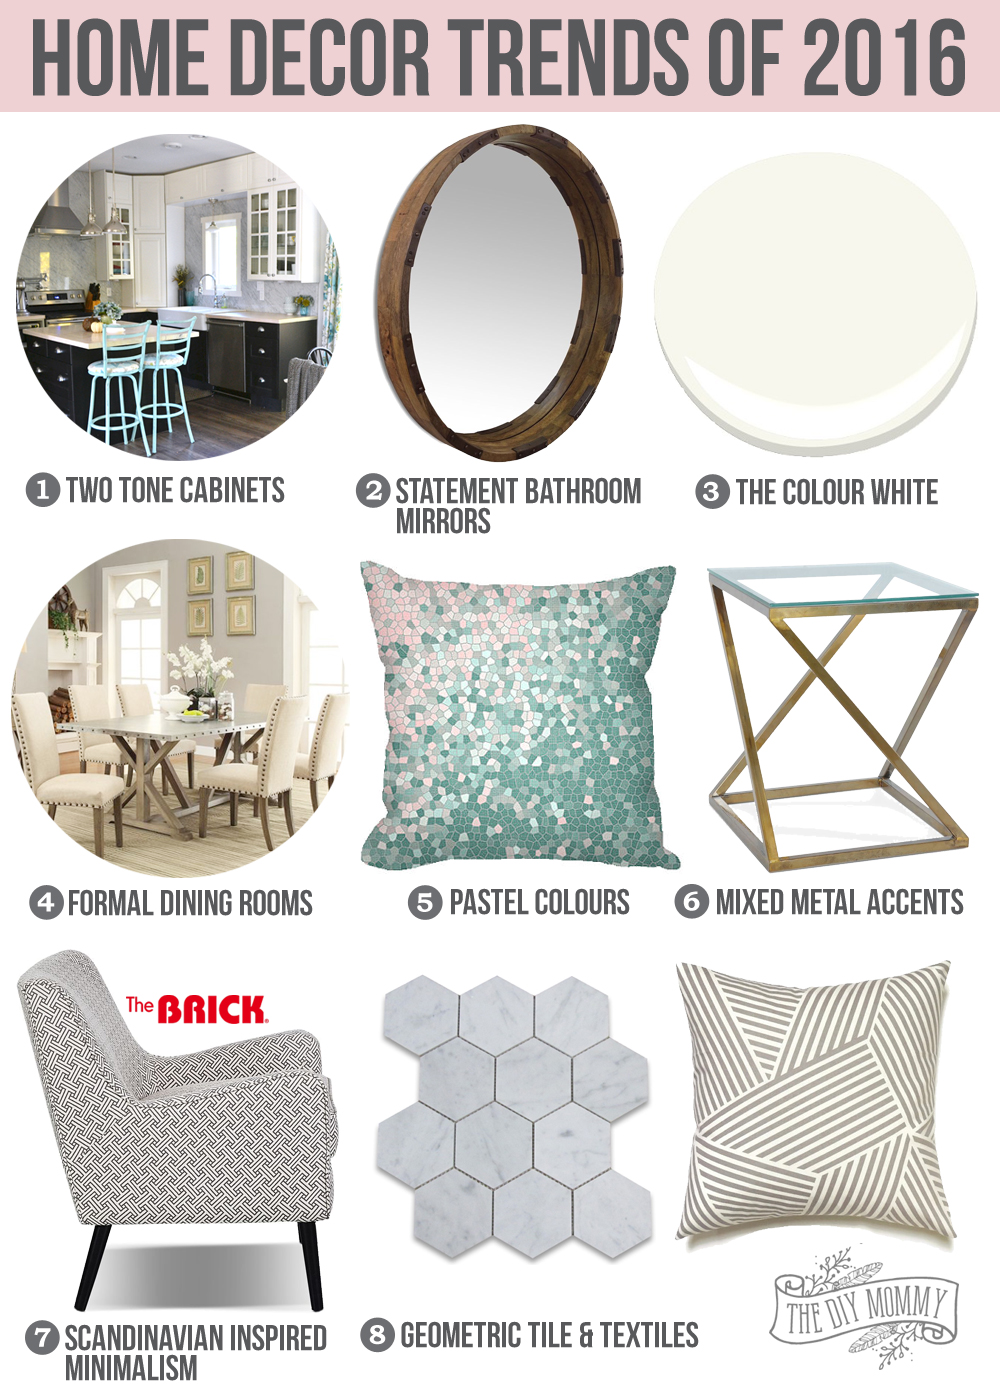 2016 home decor trends affordable sources - Home Decor Trends